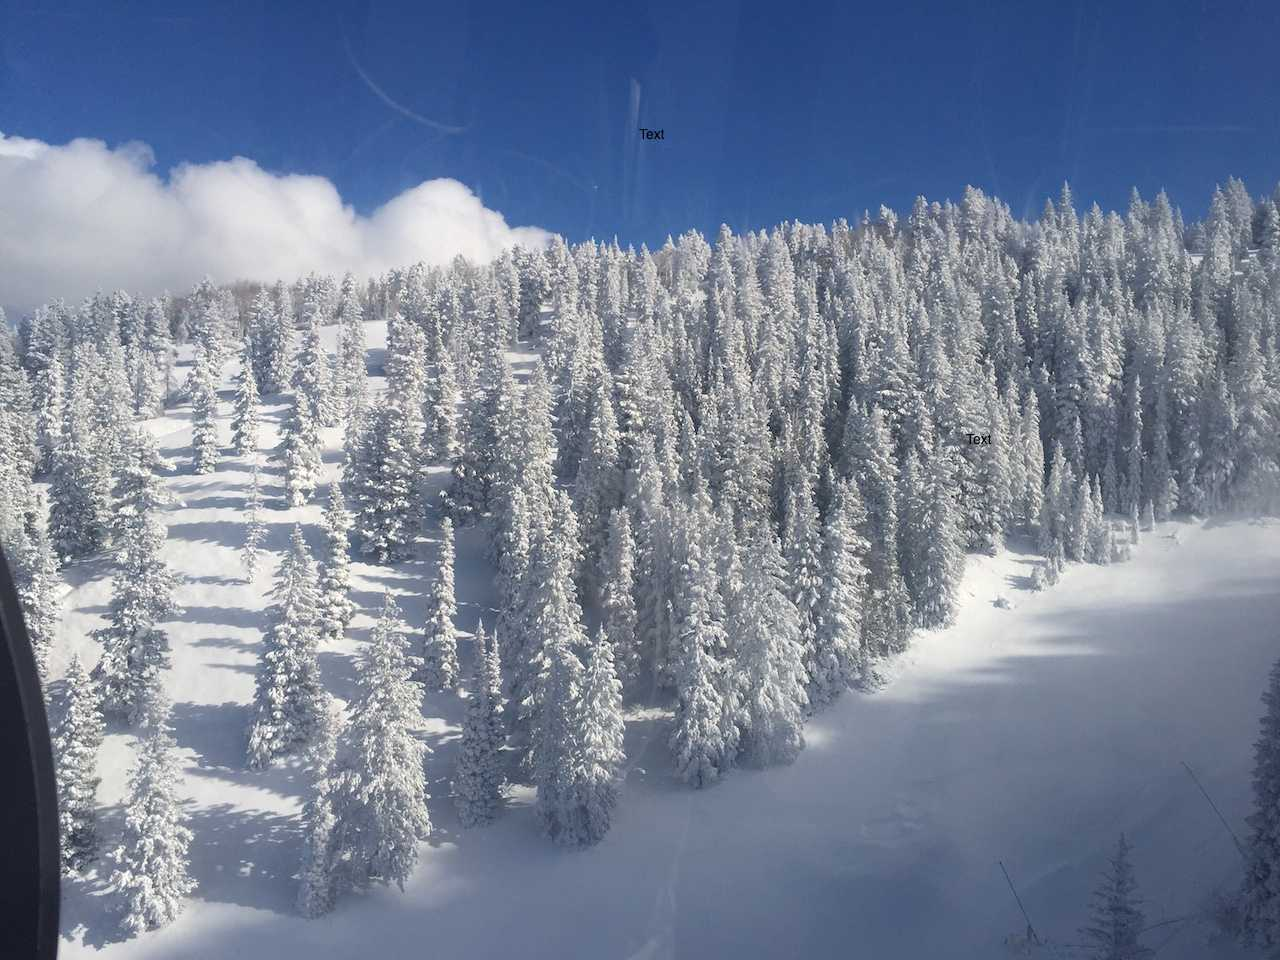 Aspen Mountain earlier this year covered in snow.